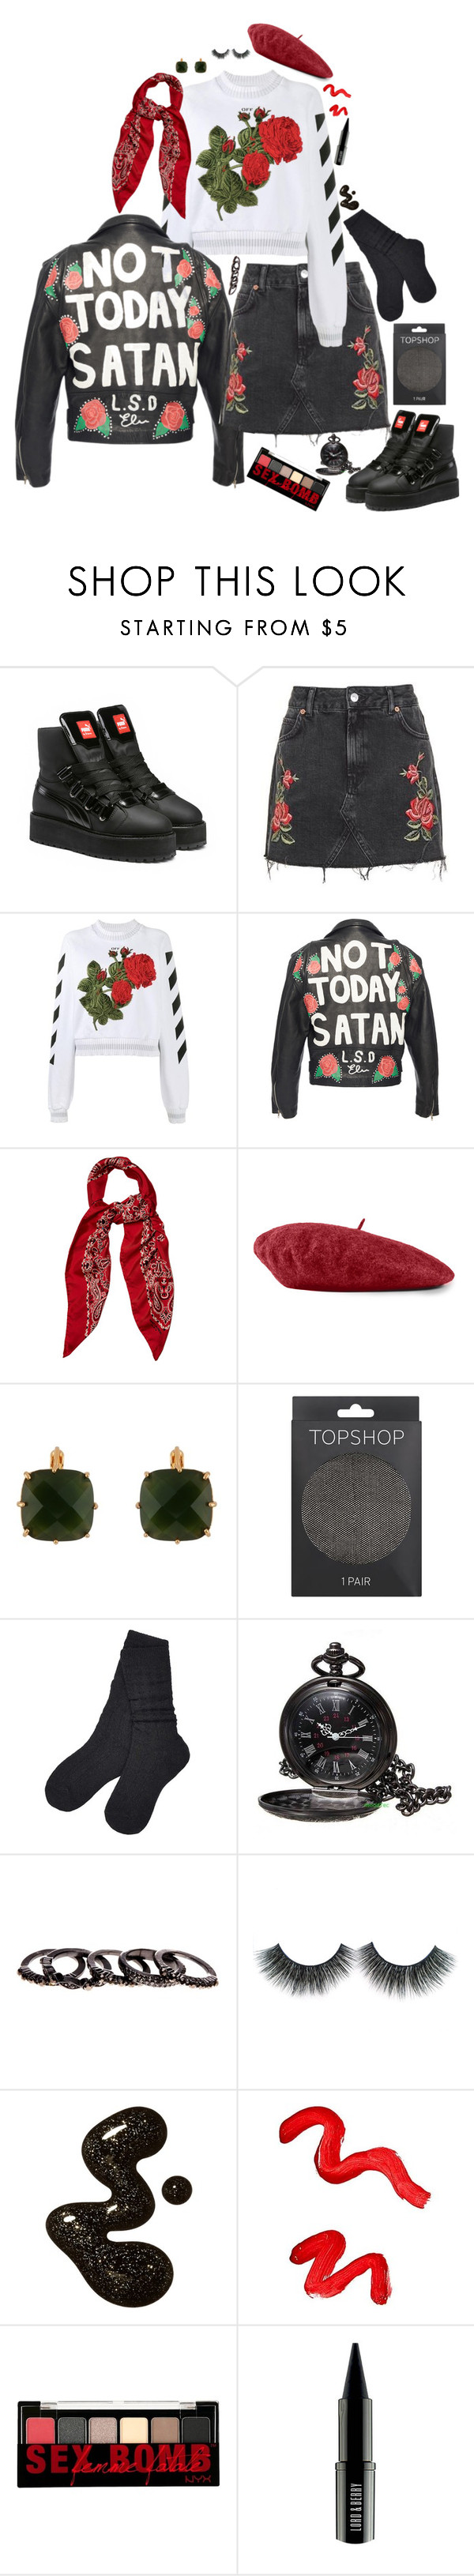 """""""Day 104"""" by alexosterberg ❤ liked on Polyvore featuring Puma, Topshop, Off-White, Yves Saint Laurent, Gucci, Les Néréides, UGG, Free Press, NYX and Lord & Berry"""